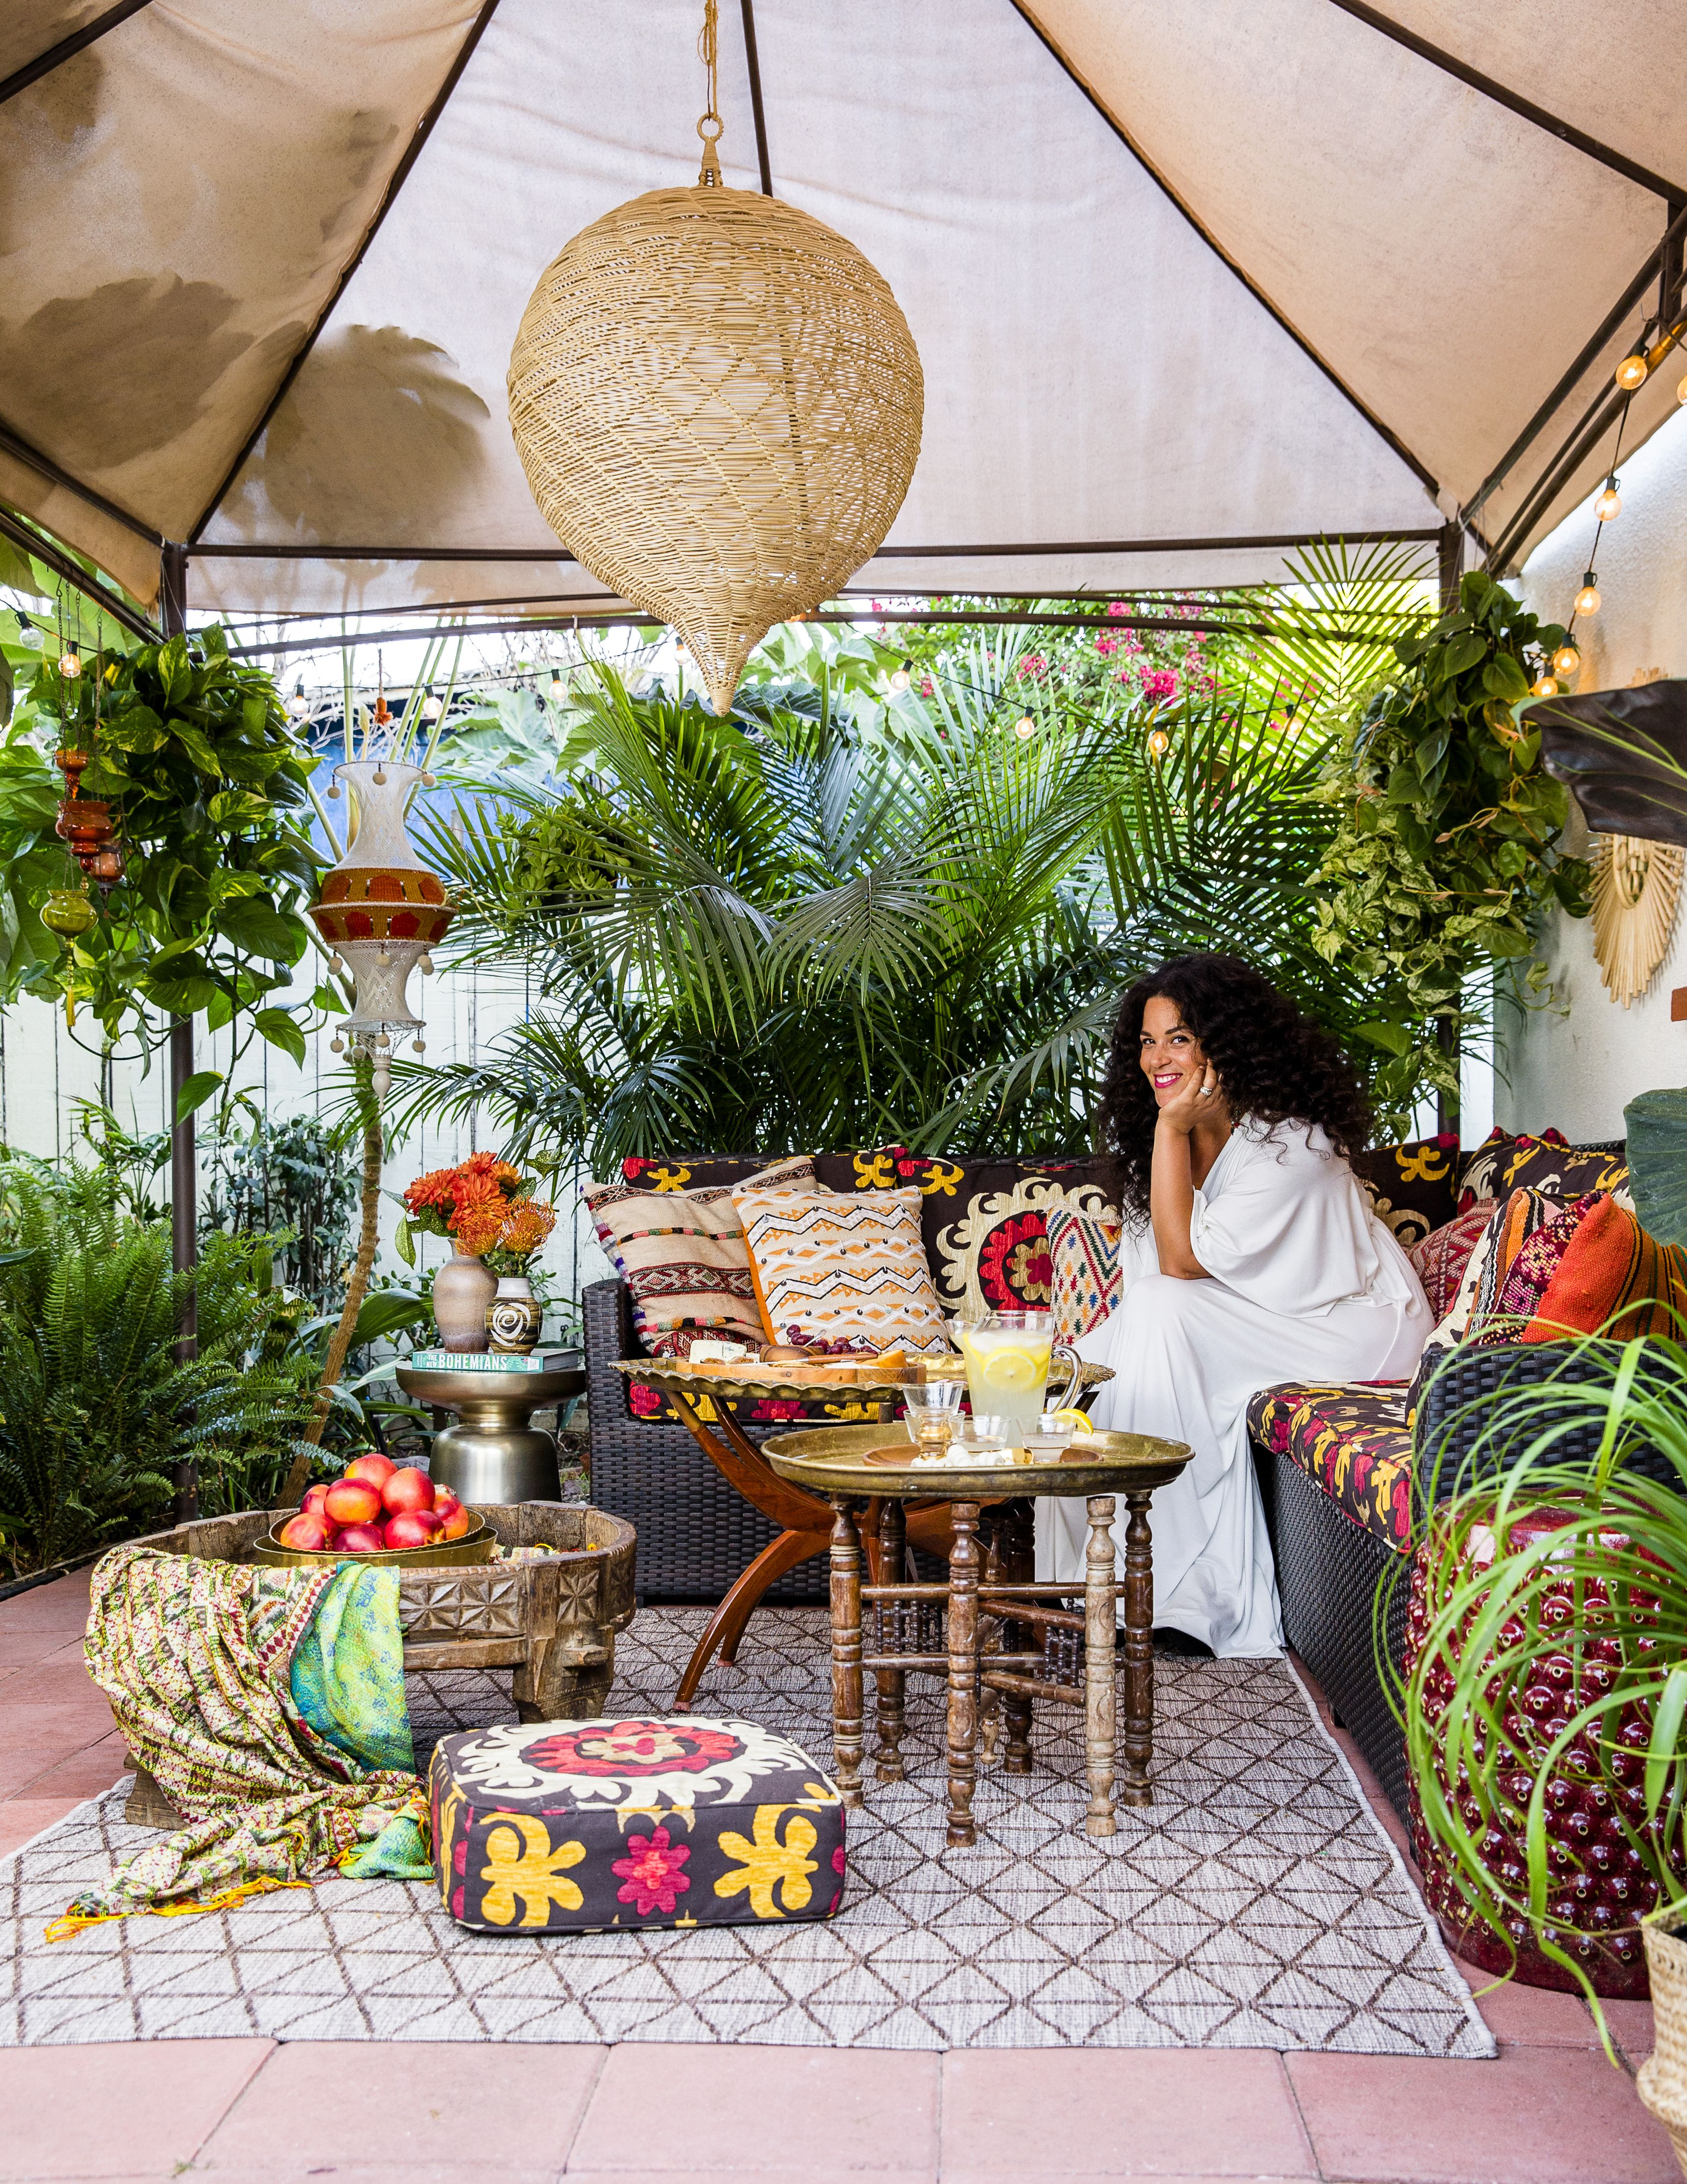 Boho Chic Decorating Ideas Boho Patio Bohemian Patio Patio Decor